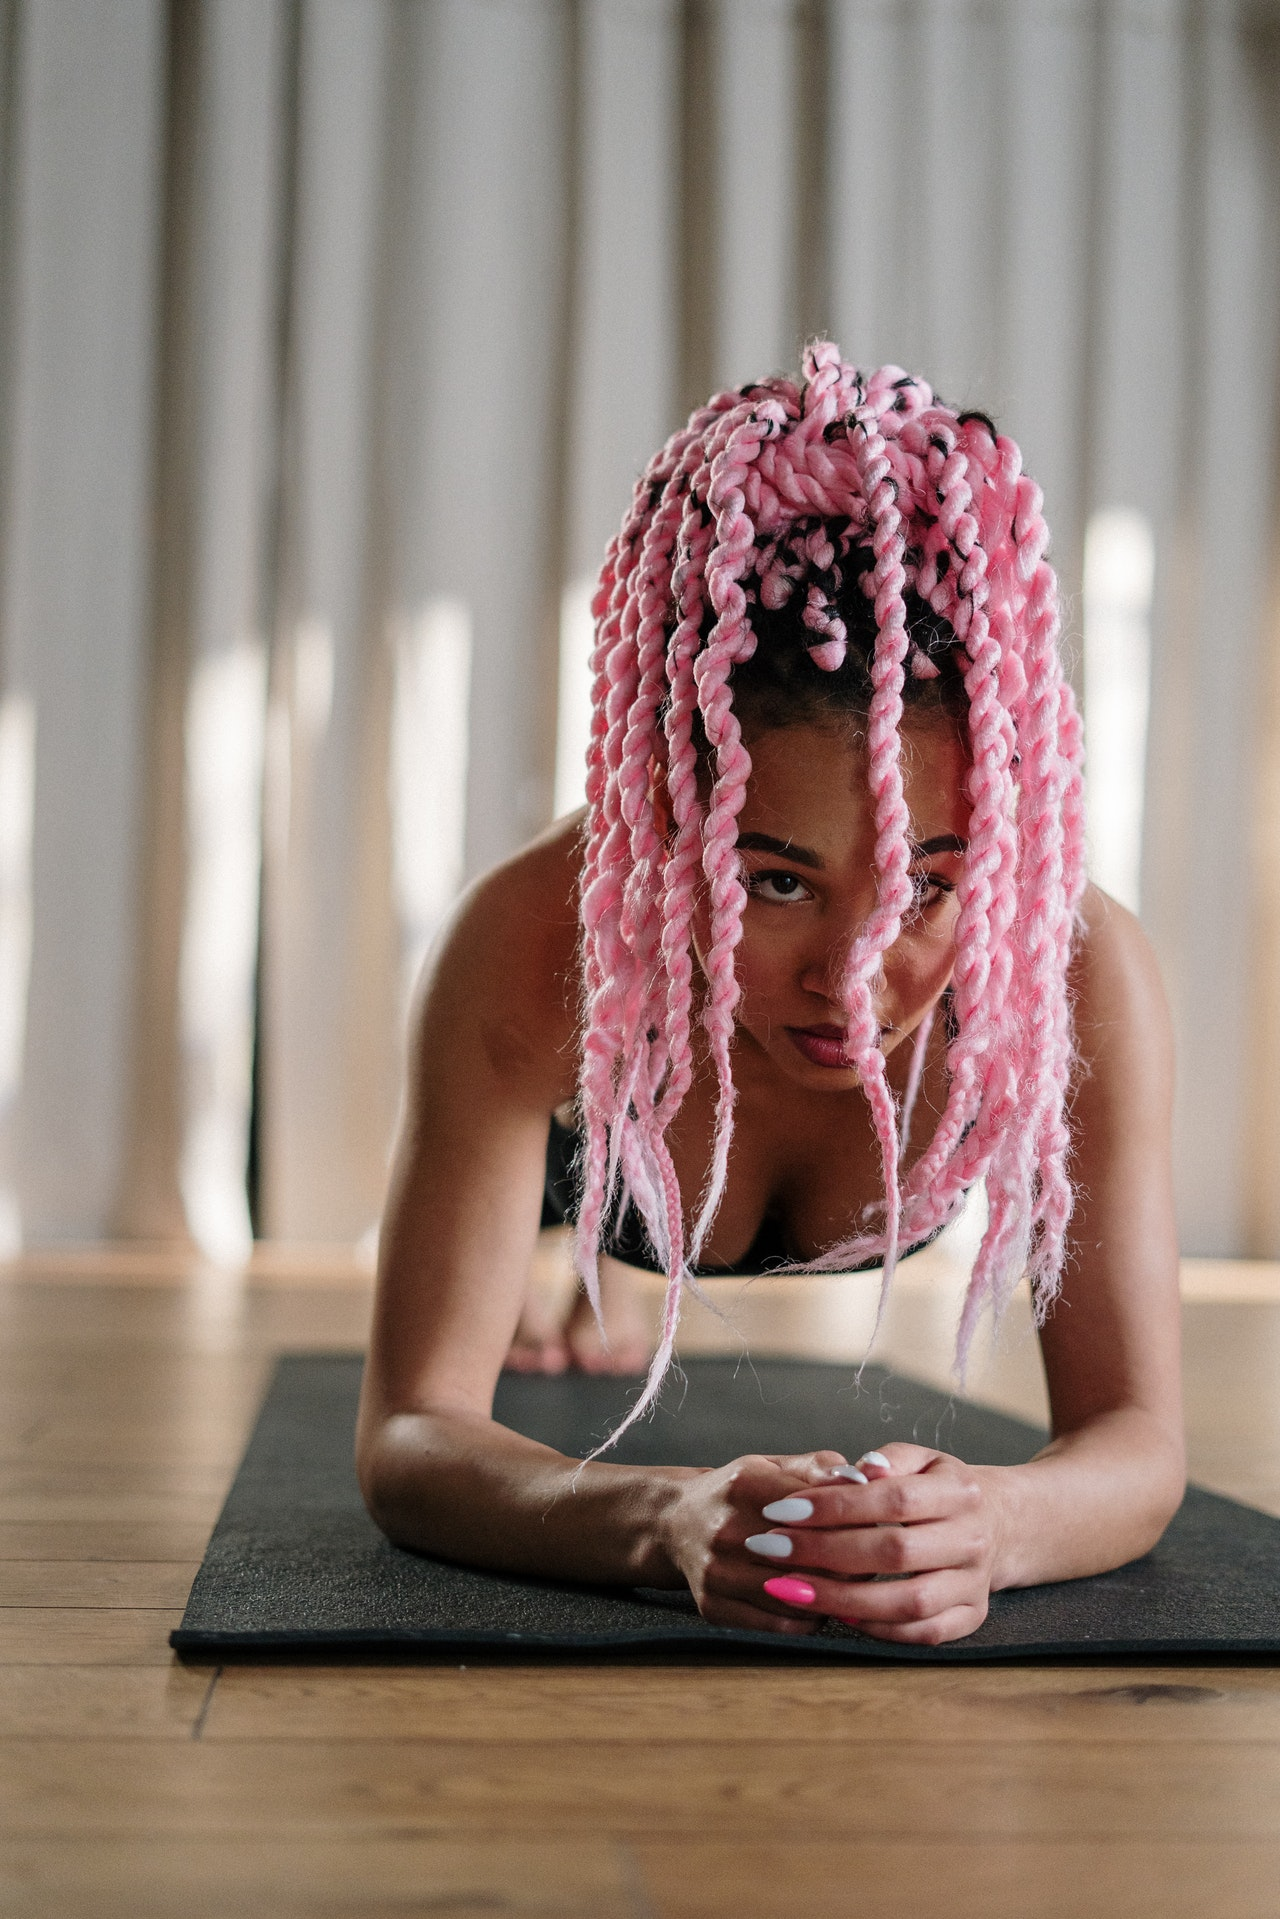 Woman with pink braids